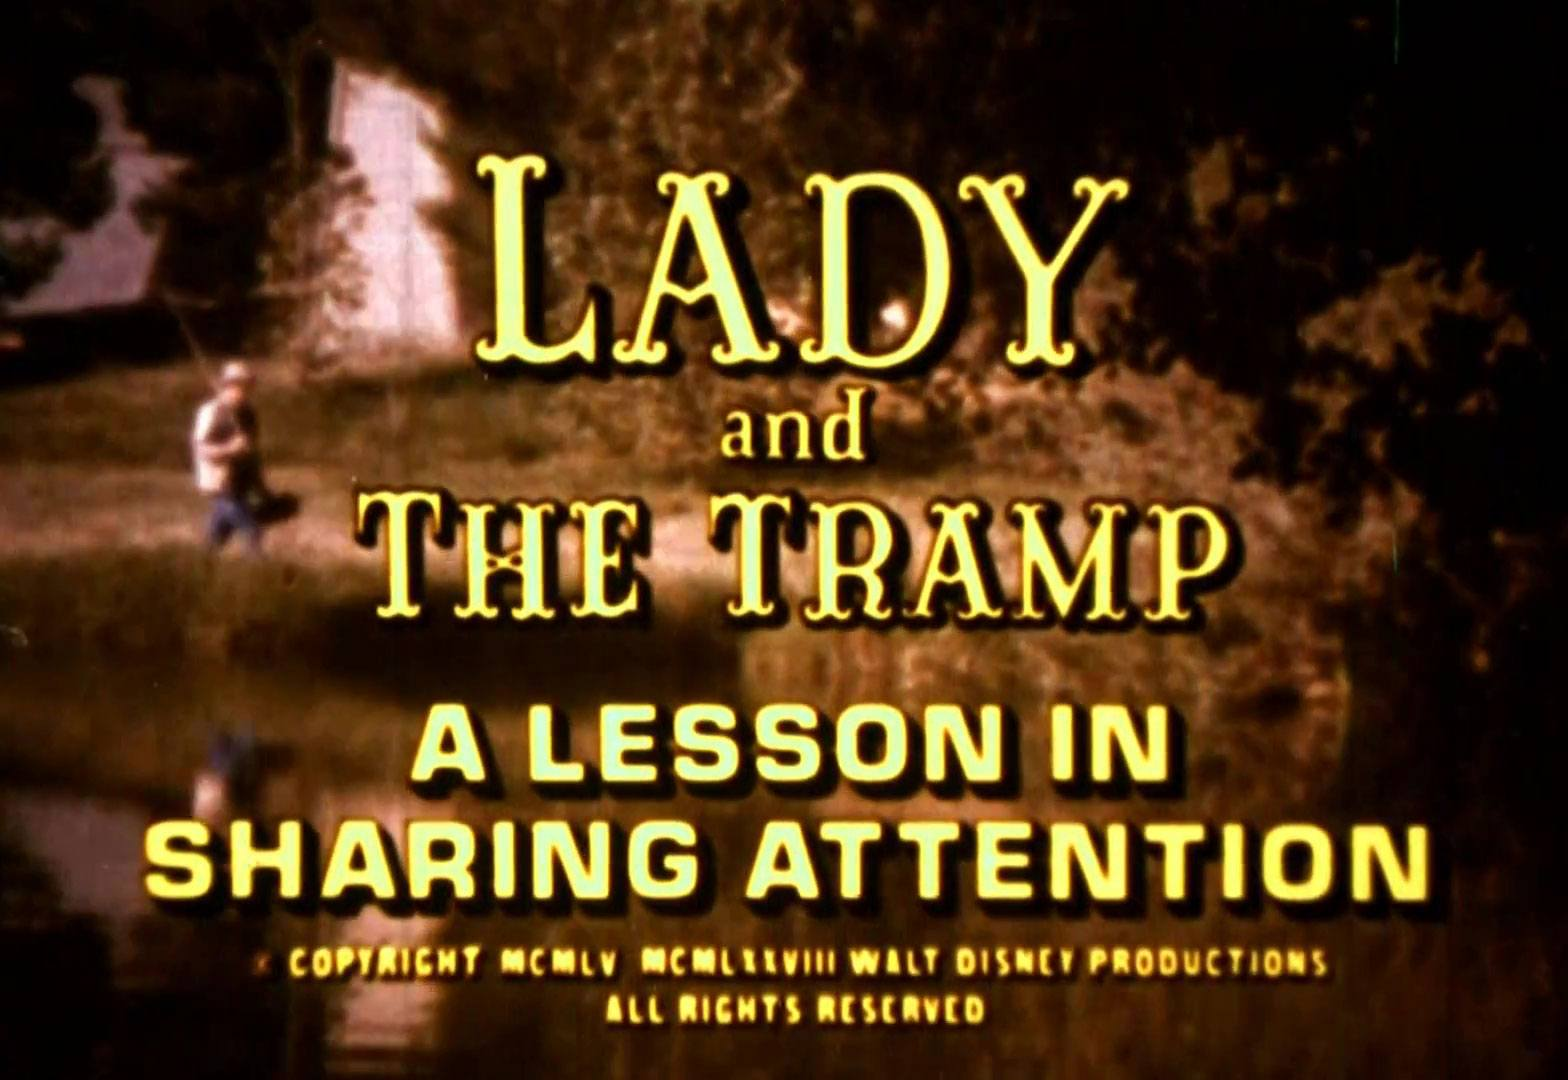 affiche poster lady tramp lesson sharring attention disney